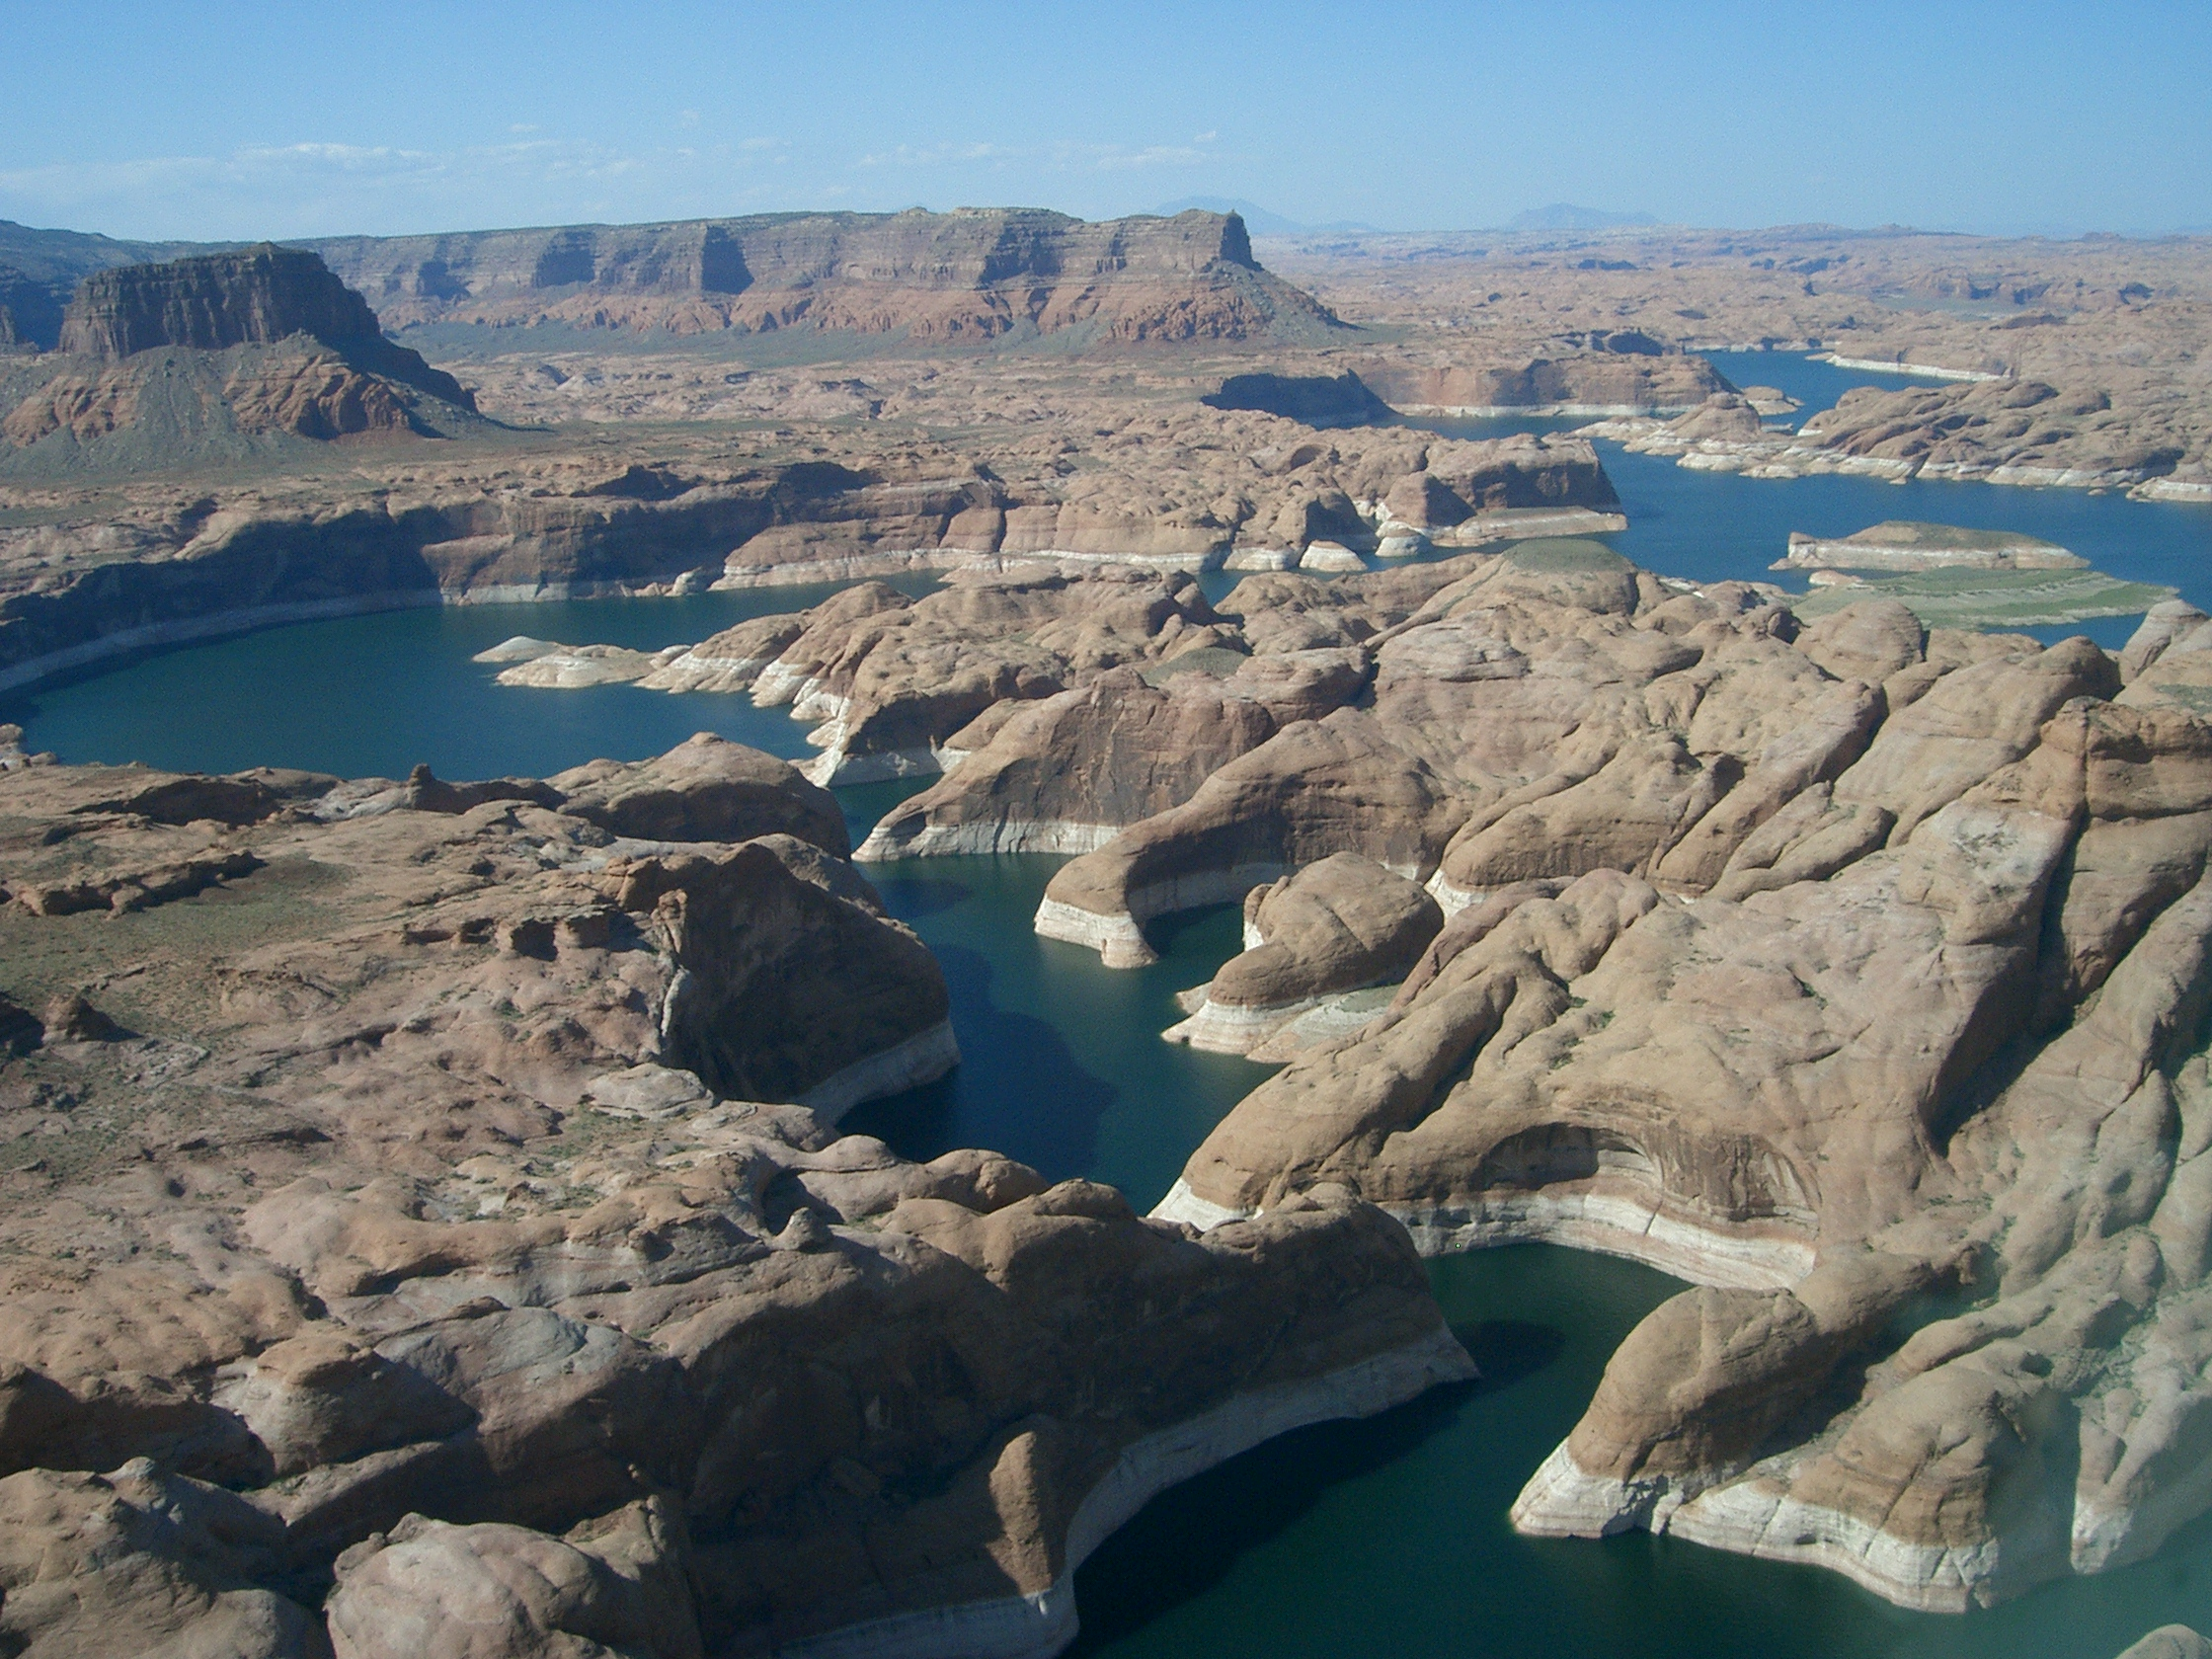 lake powell Lake powell is one of the most popular reservoirs to fish in the west formed by the creation of glen canyon dam, lake powell is located in norhtern arizona and southern utah lake powell has something for everyone, whether you like to fish, waterski, swim or snorkle, relax, ride jetskis or anything else - utah fishing info.